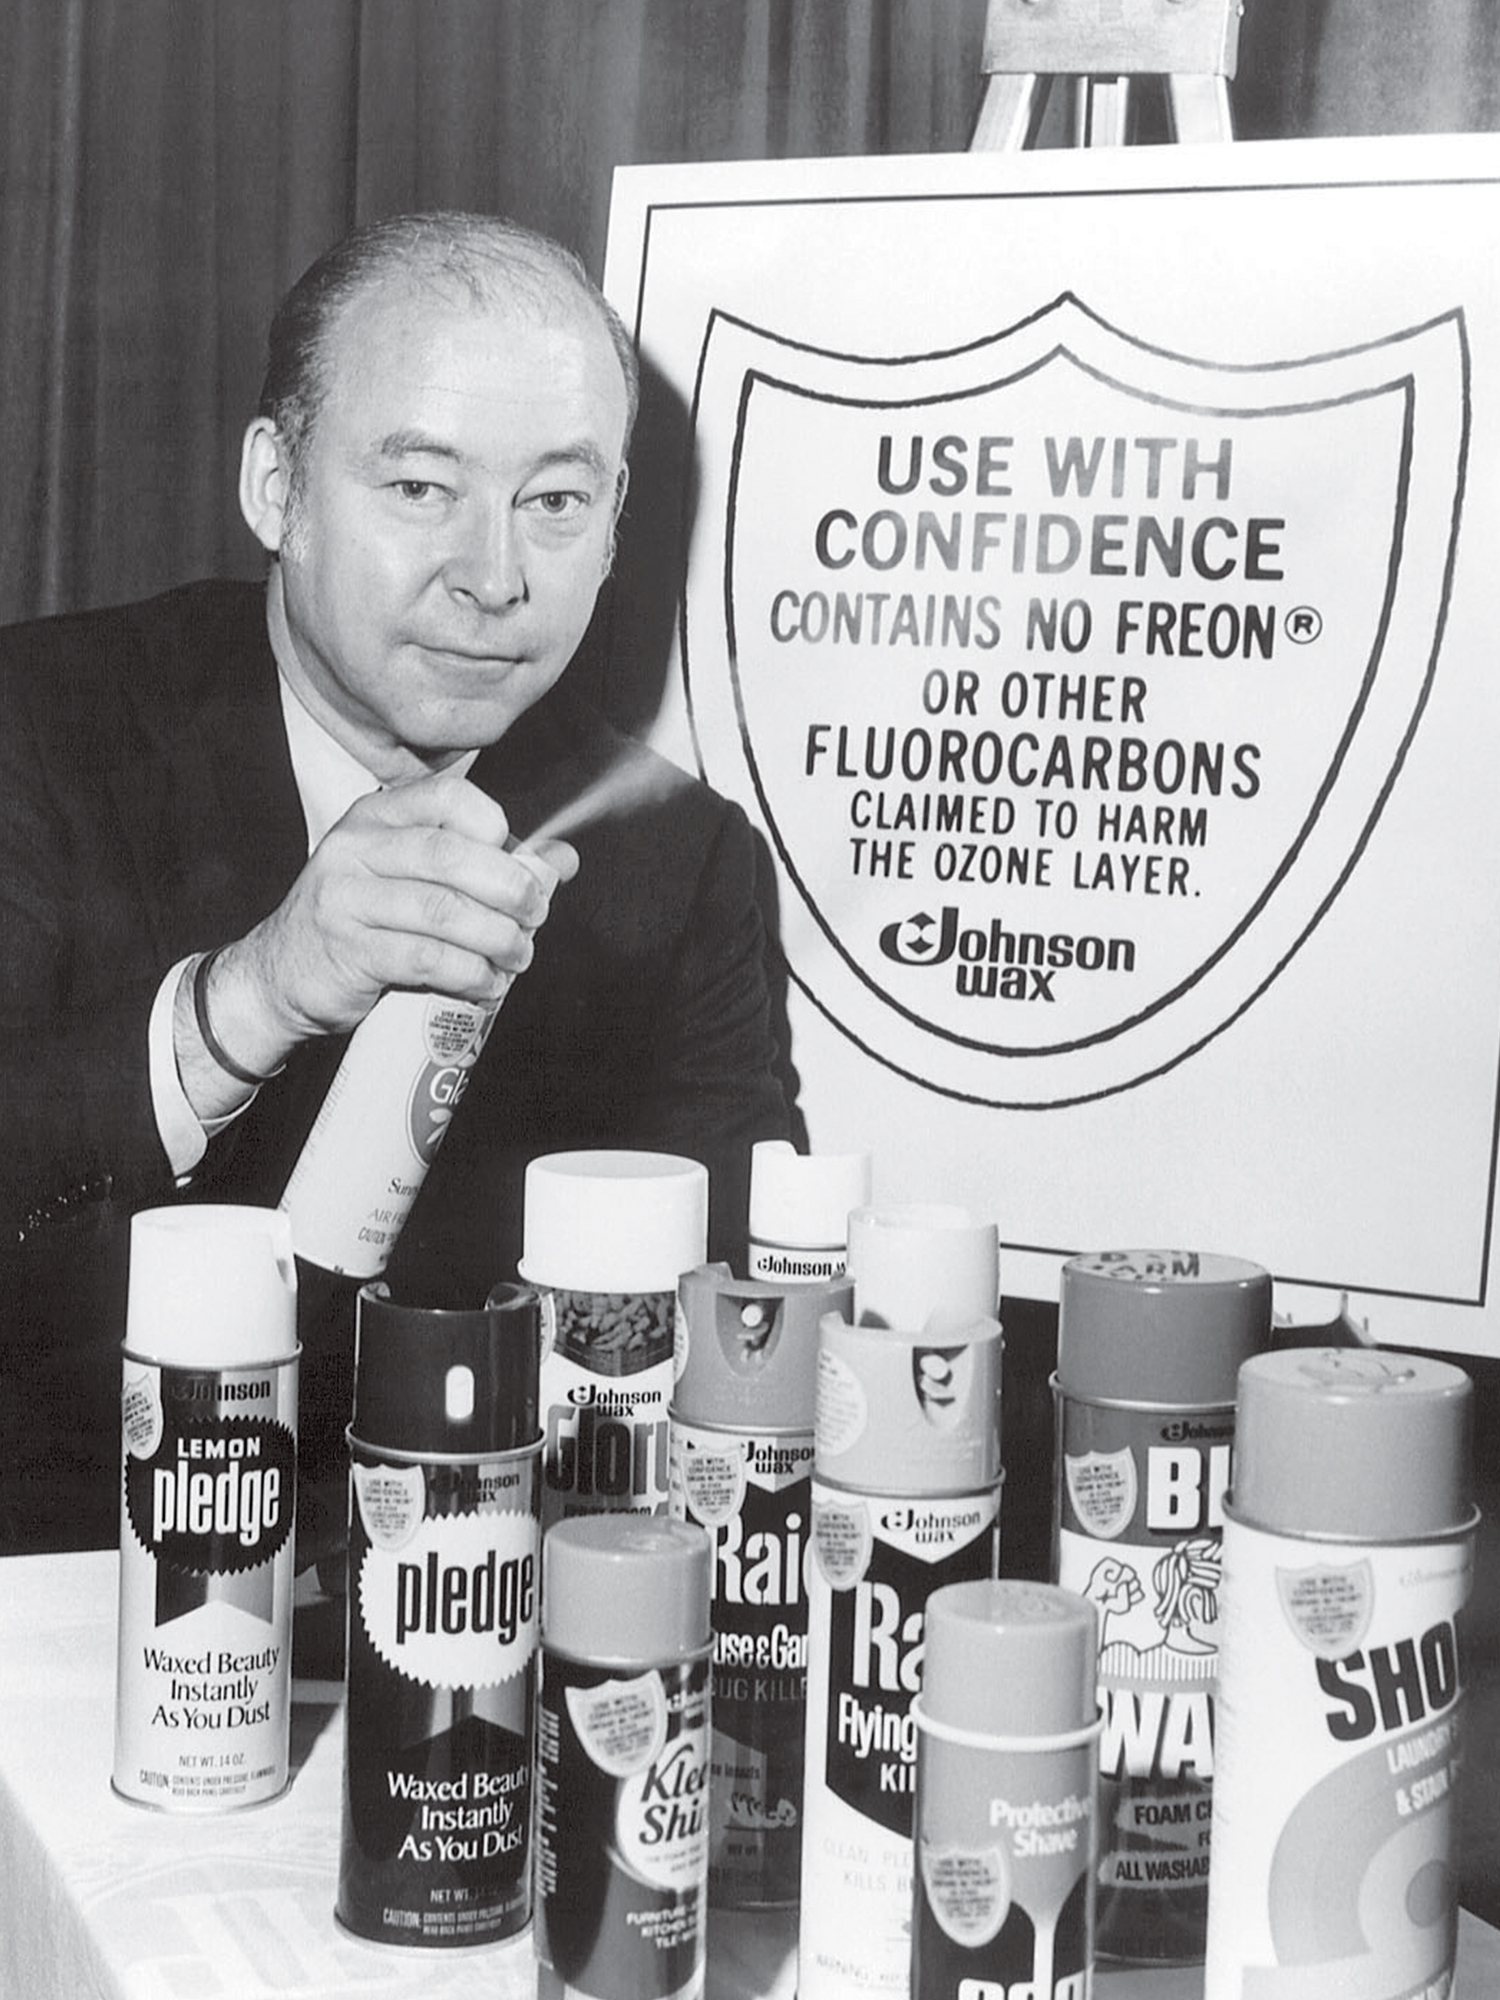 Sam Johnson removed Chlorofluorocarbons (CFCs) from all products to be environmentally responsible and because it was the right thing to do.